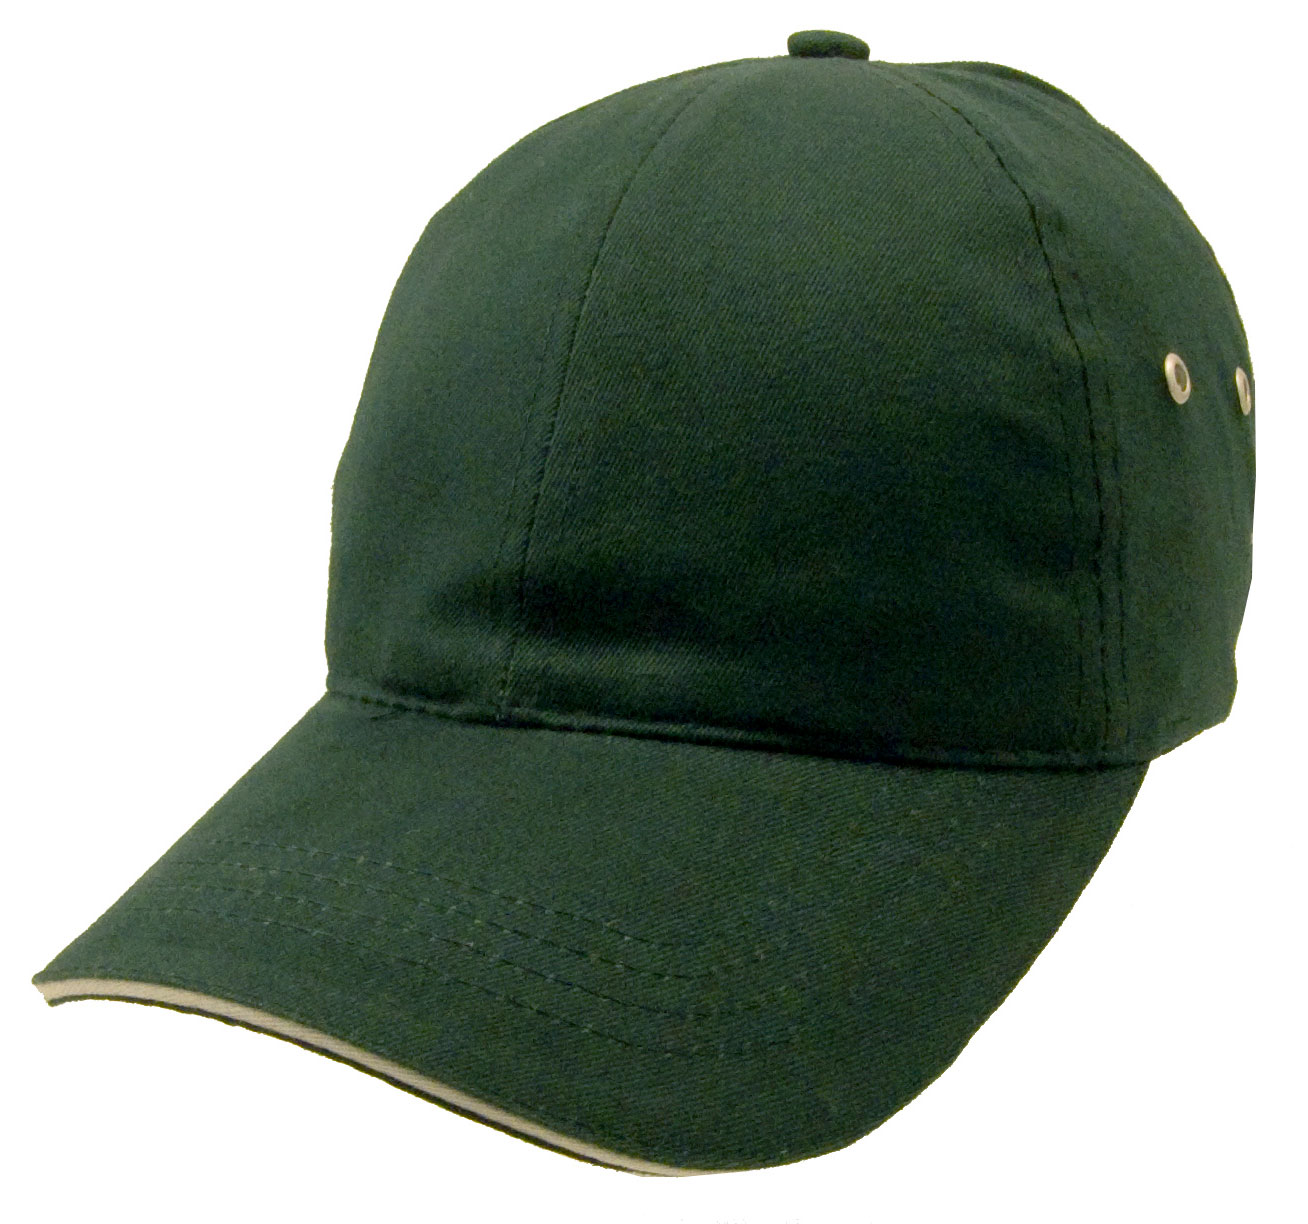 Constructed Lightweight Brushed Cotton Twill Sandwich Cap